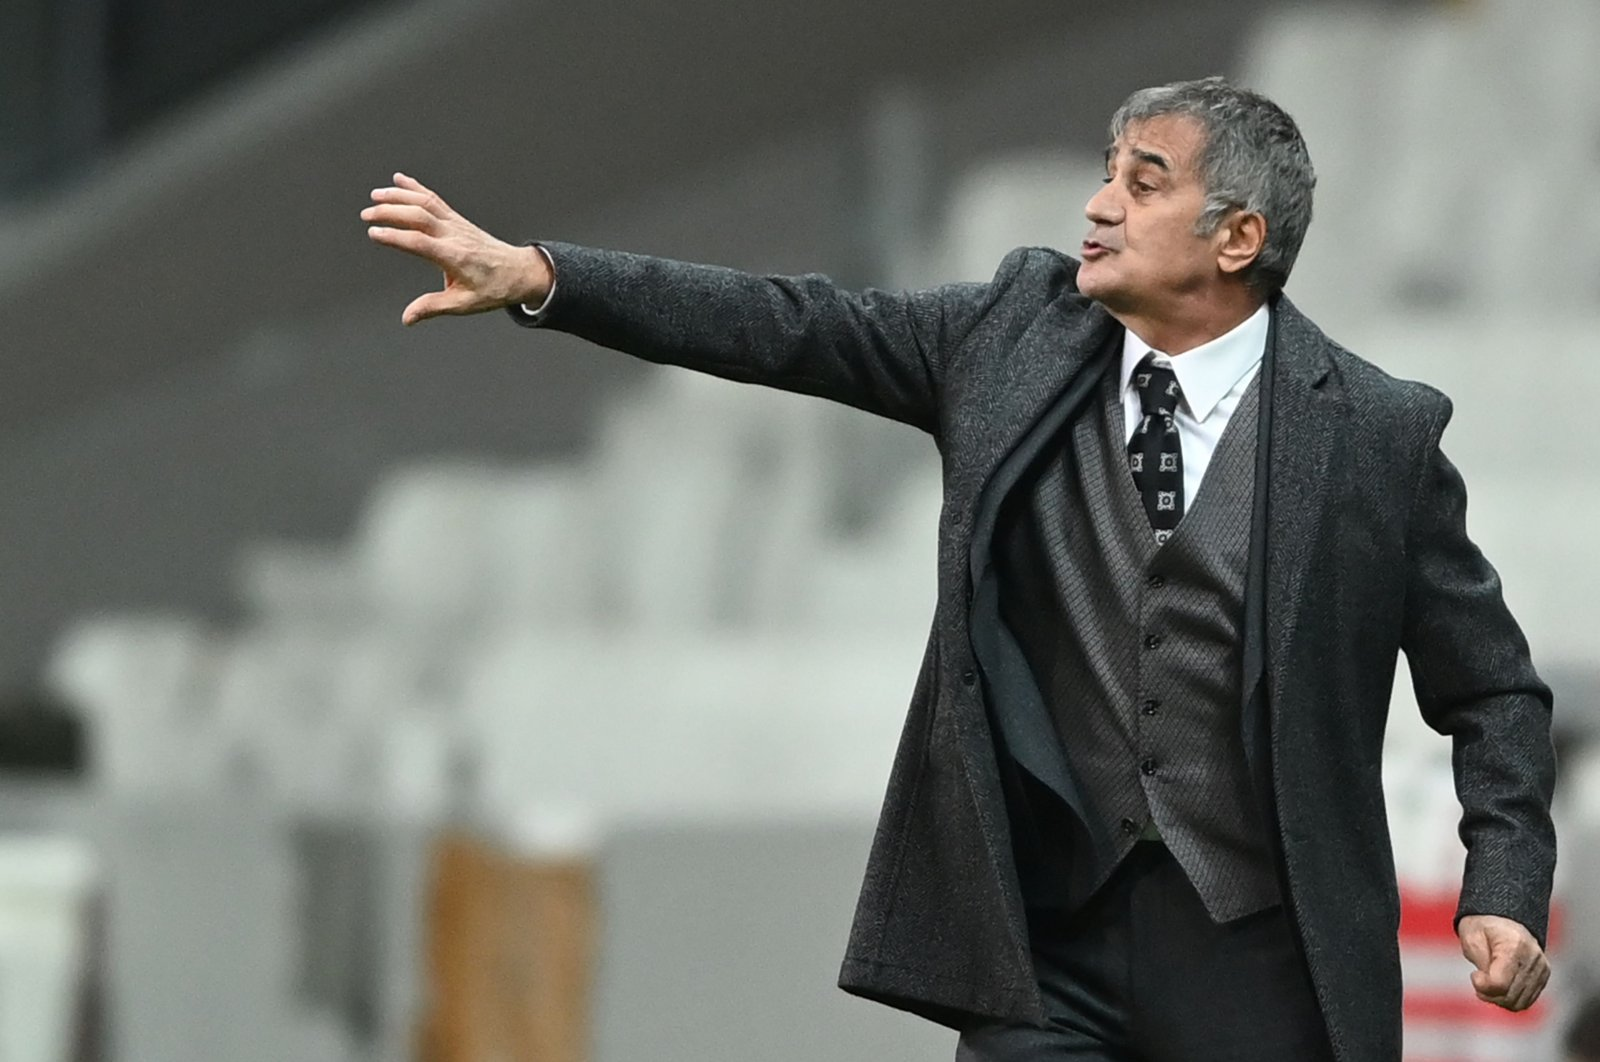 Turkey's coach Şenol Güneş gestures on the sideline during the friendly football match between Turkey and Croatia at the Vodafone Park, Istanbul, Turkey, Nov. 11, 2020. (AFP Photo)